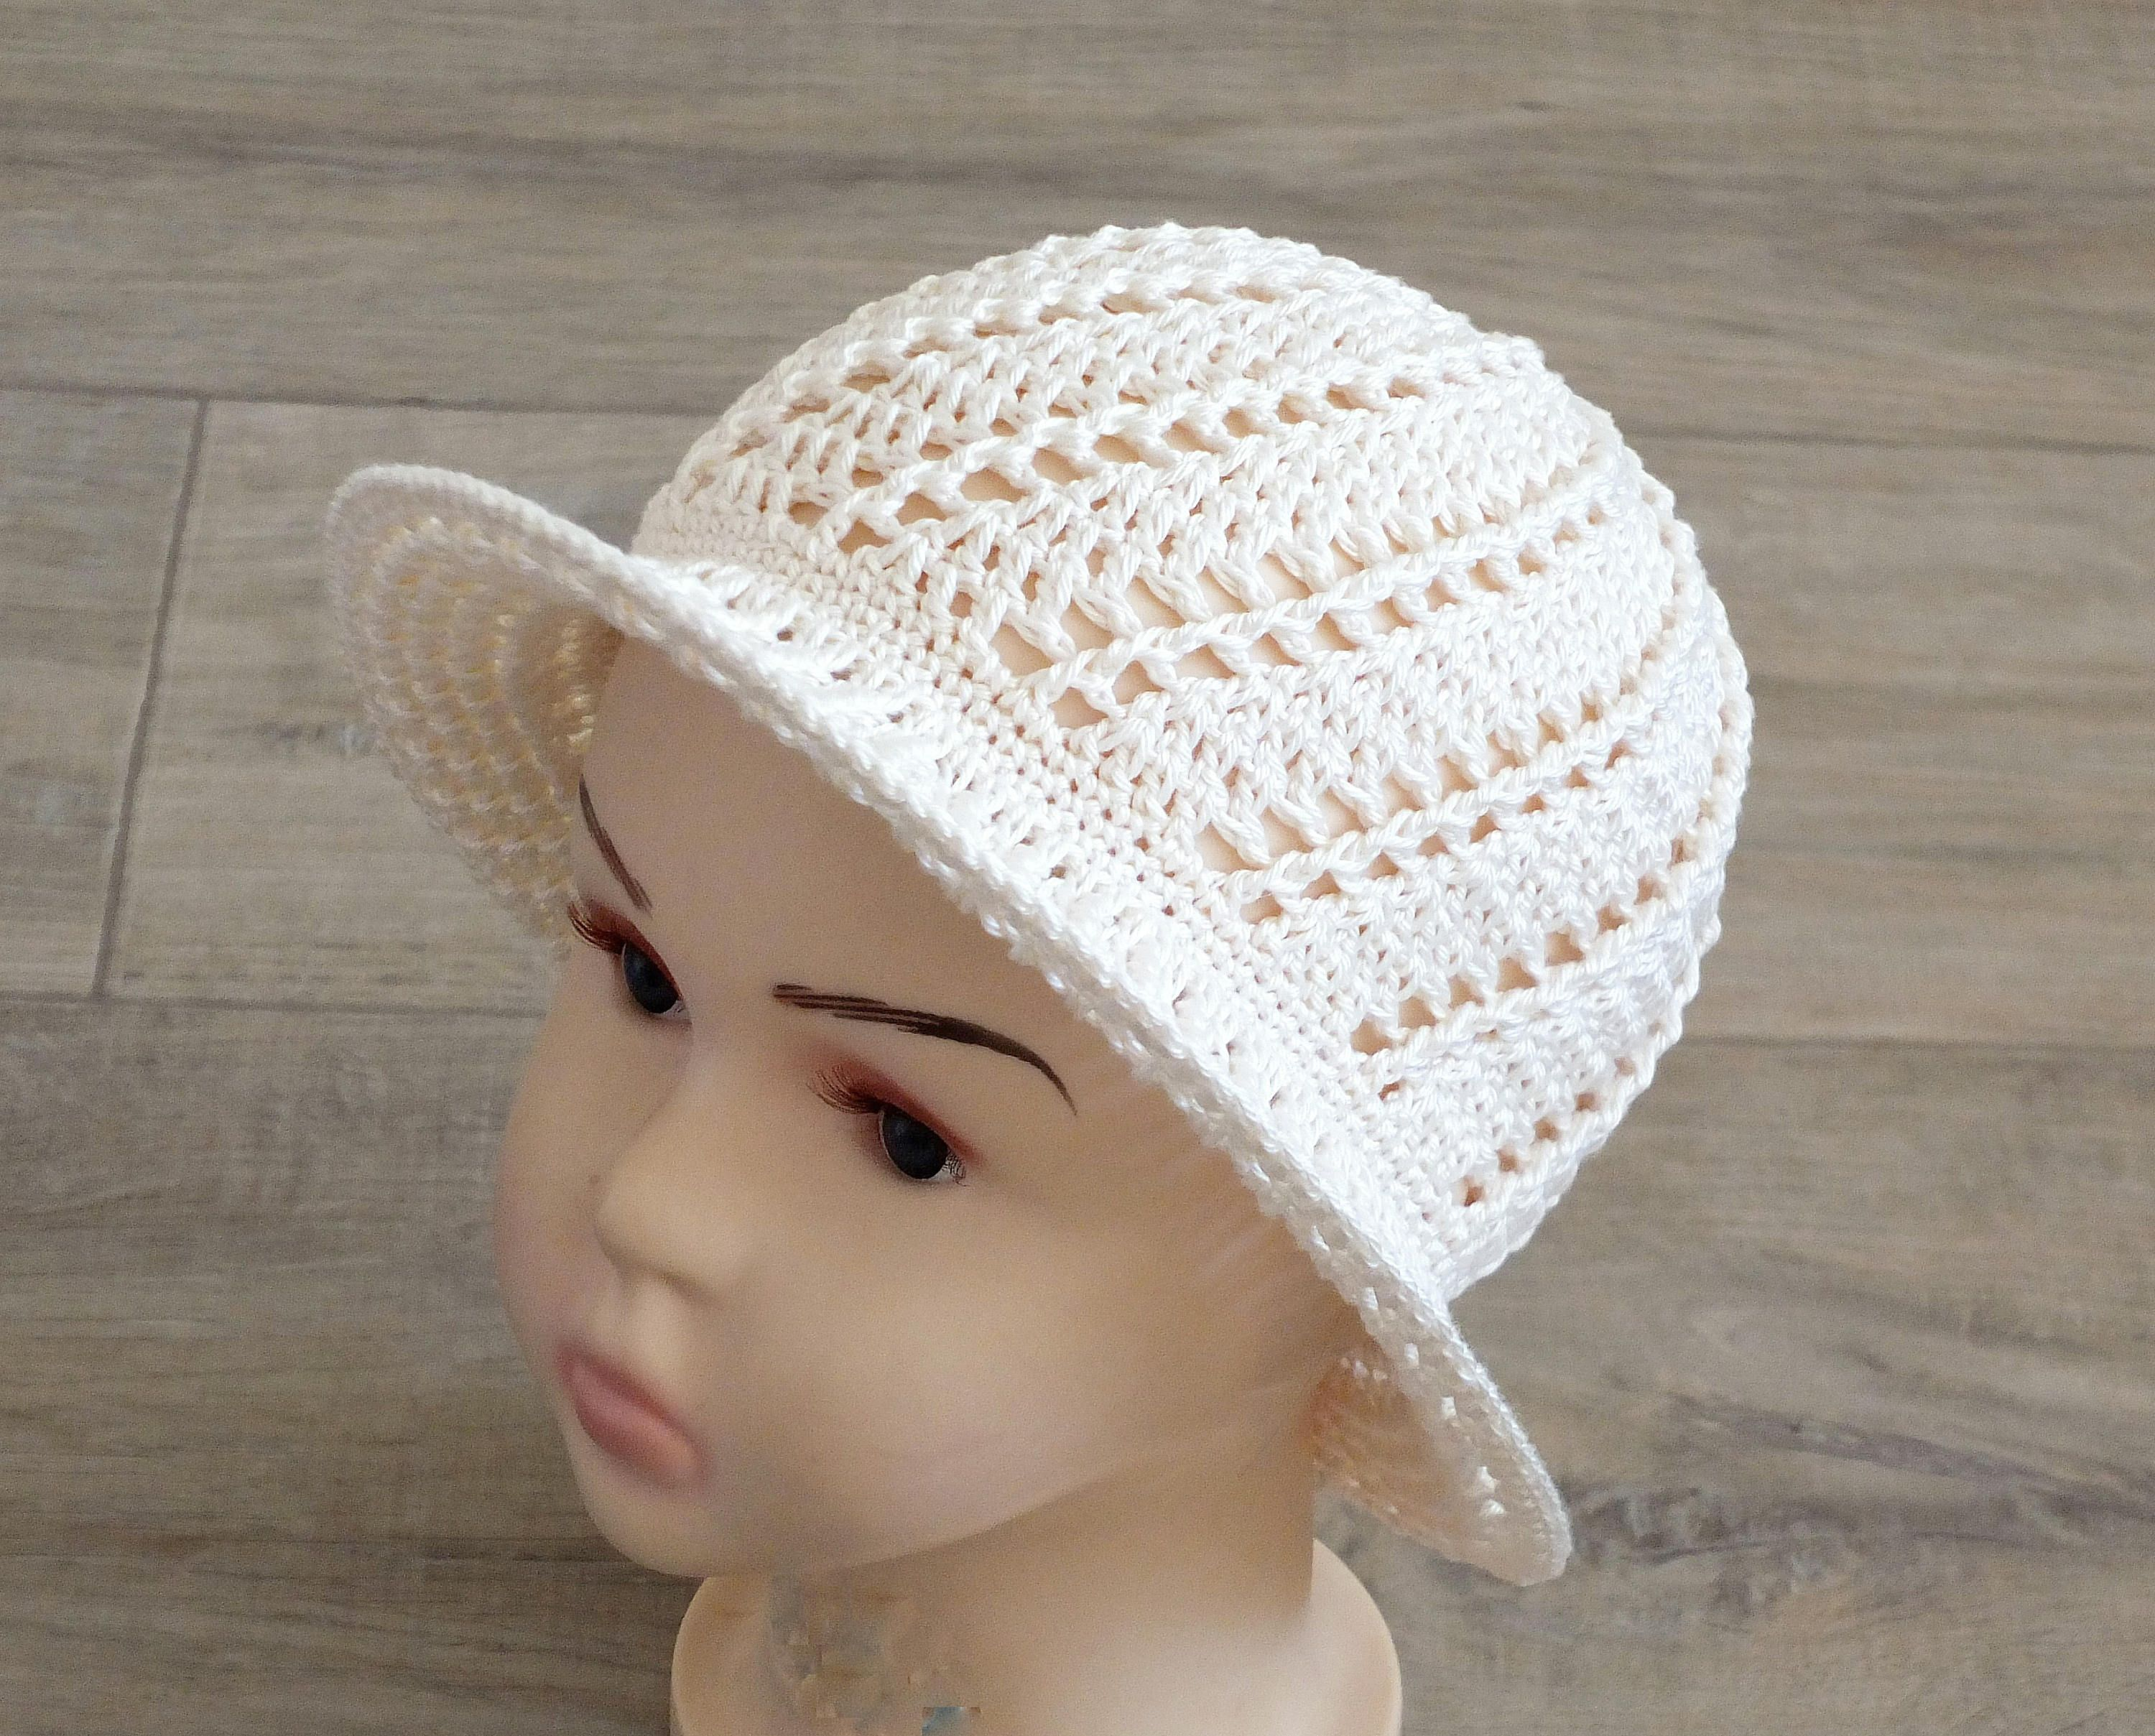 Crochet Sun hat - Cotton hat - Baby sun hat - Brimmed Summer Hat - Womens  sun hat - Beach hat - Girls sun hat - Crochet hat - Panama hat by  HandmadebyInese ... dc8ca7120